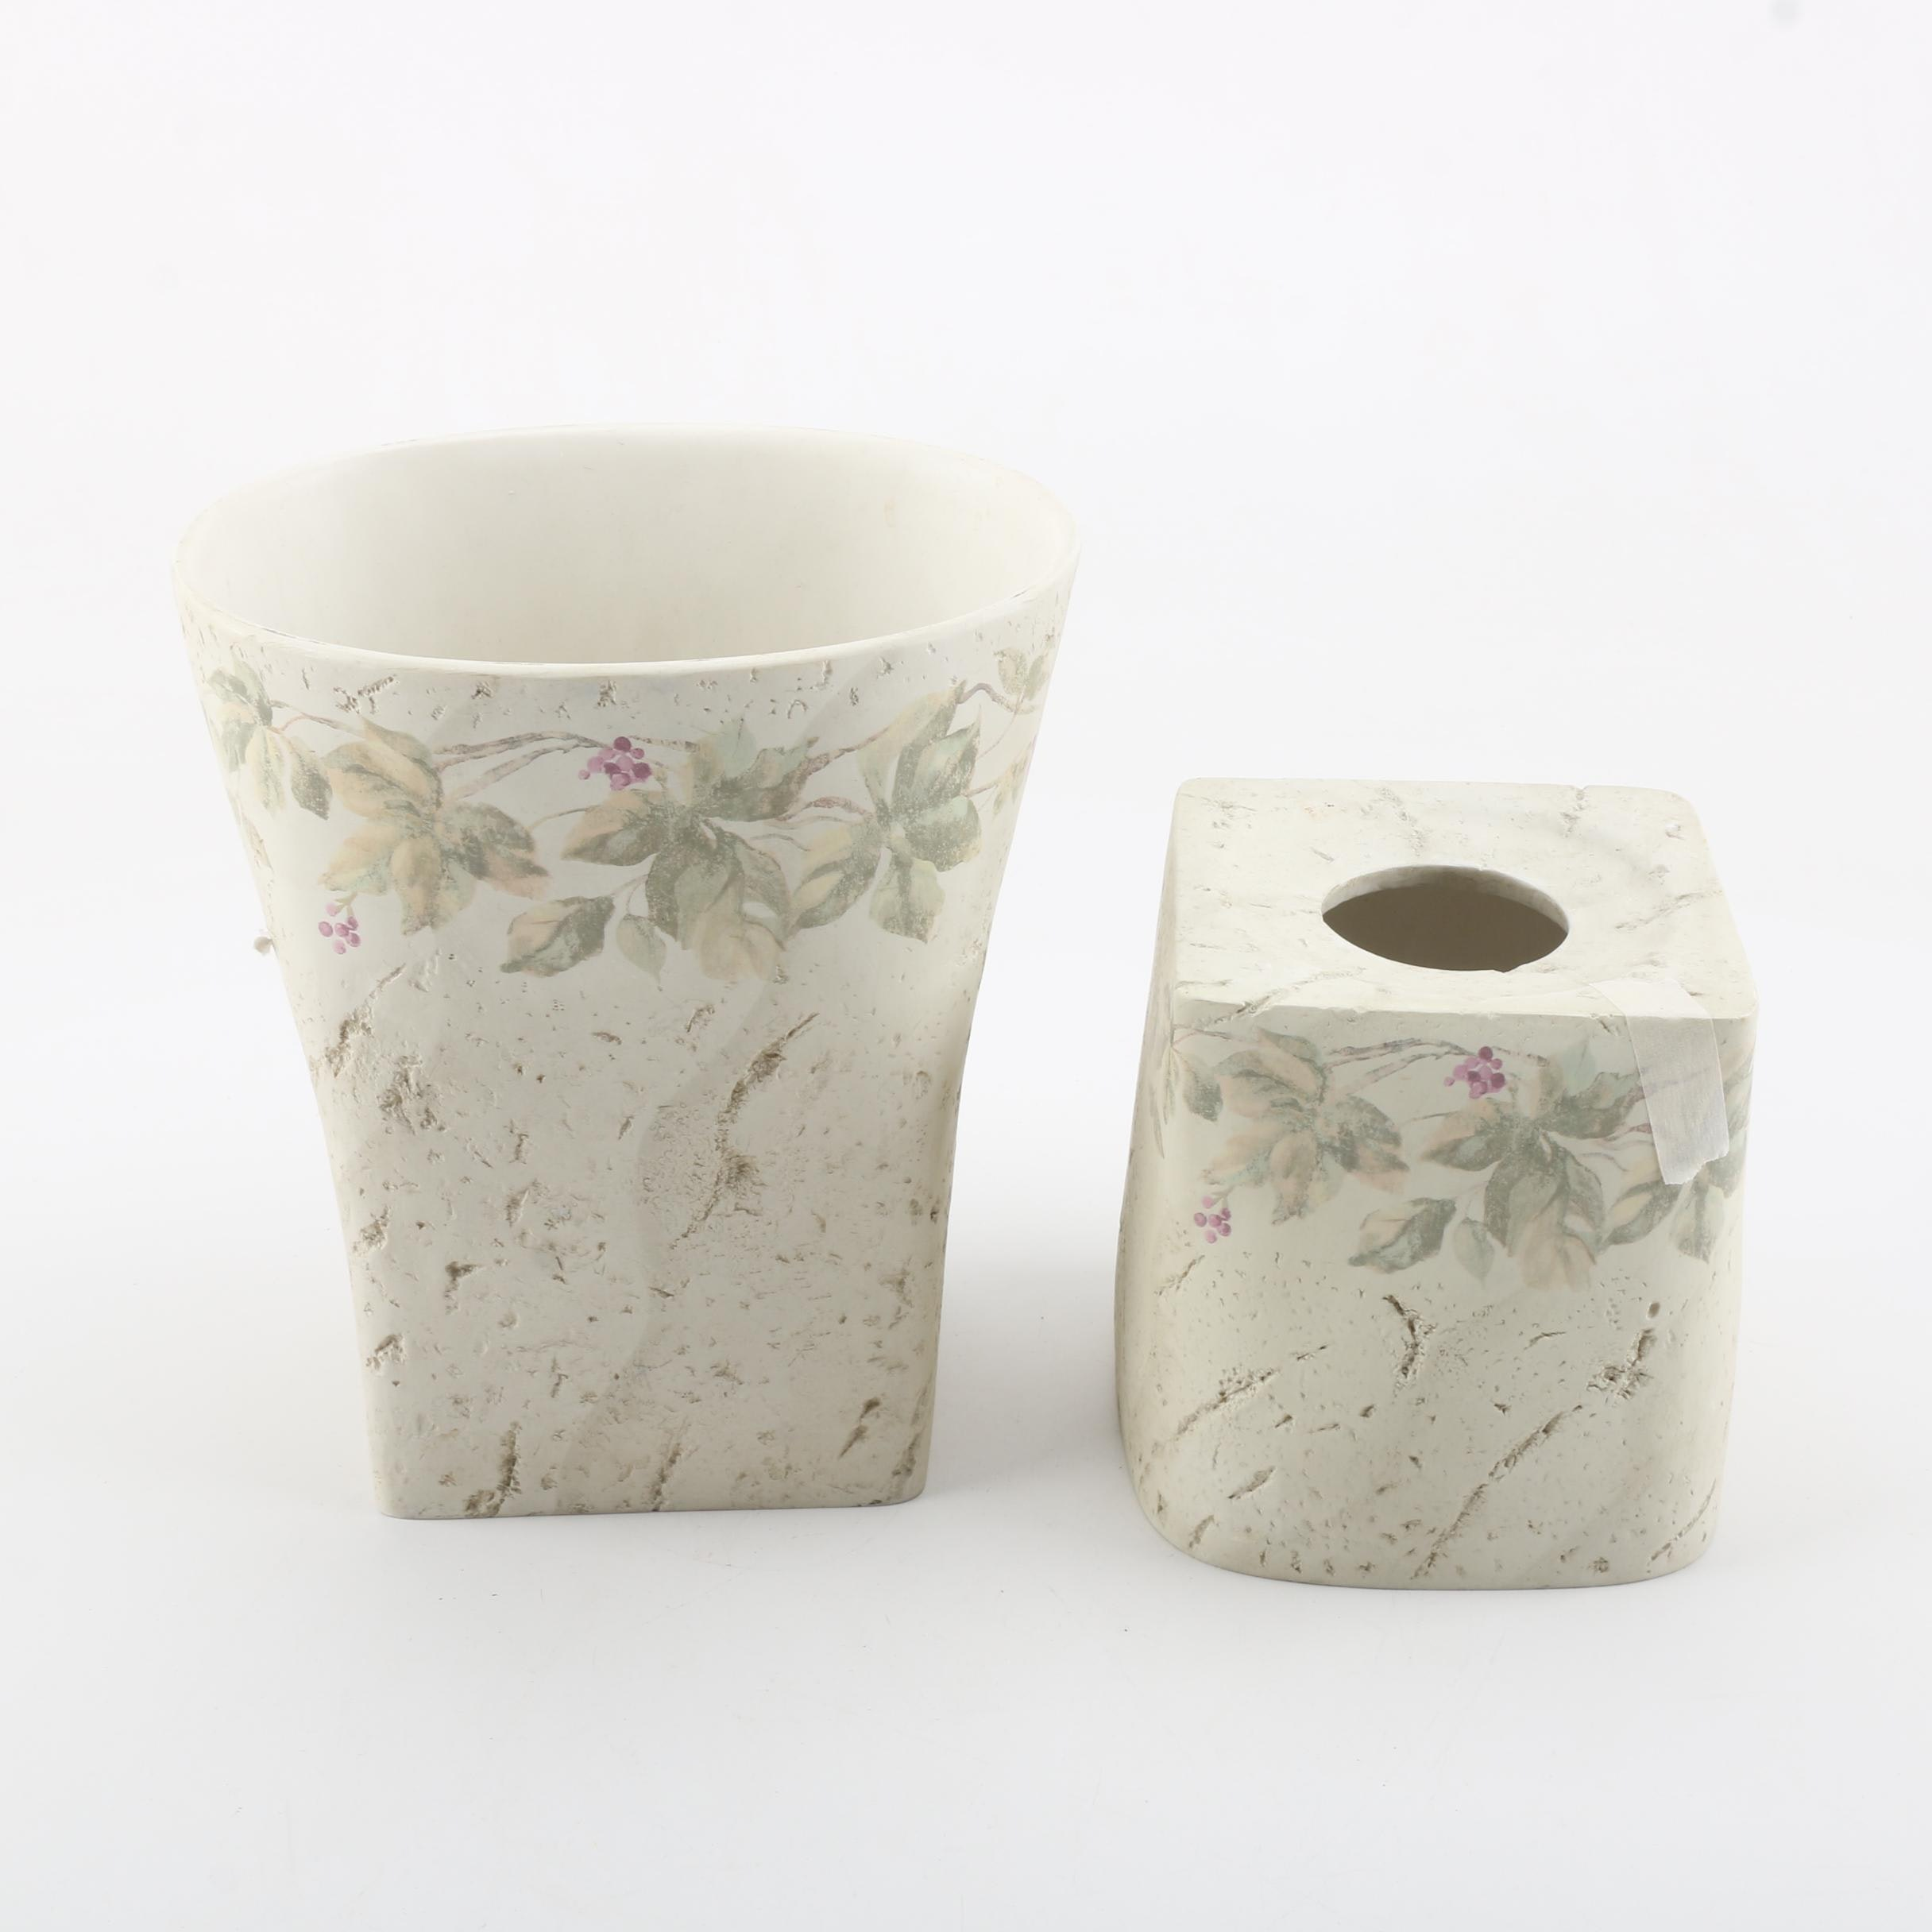 Ivy Motif Ceramic Wastebasket and Tissue Cover